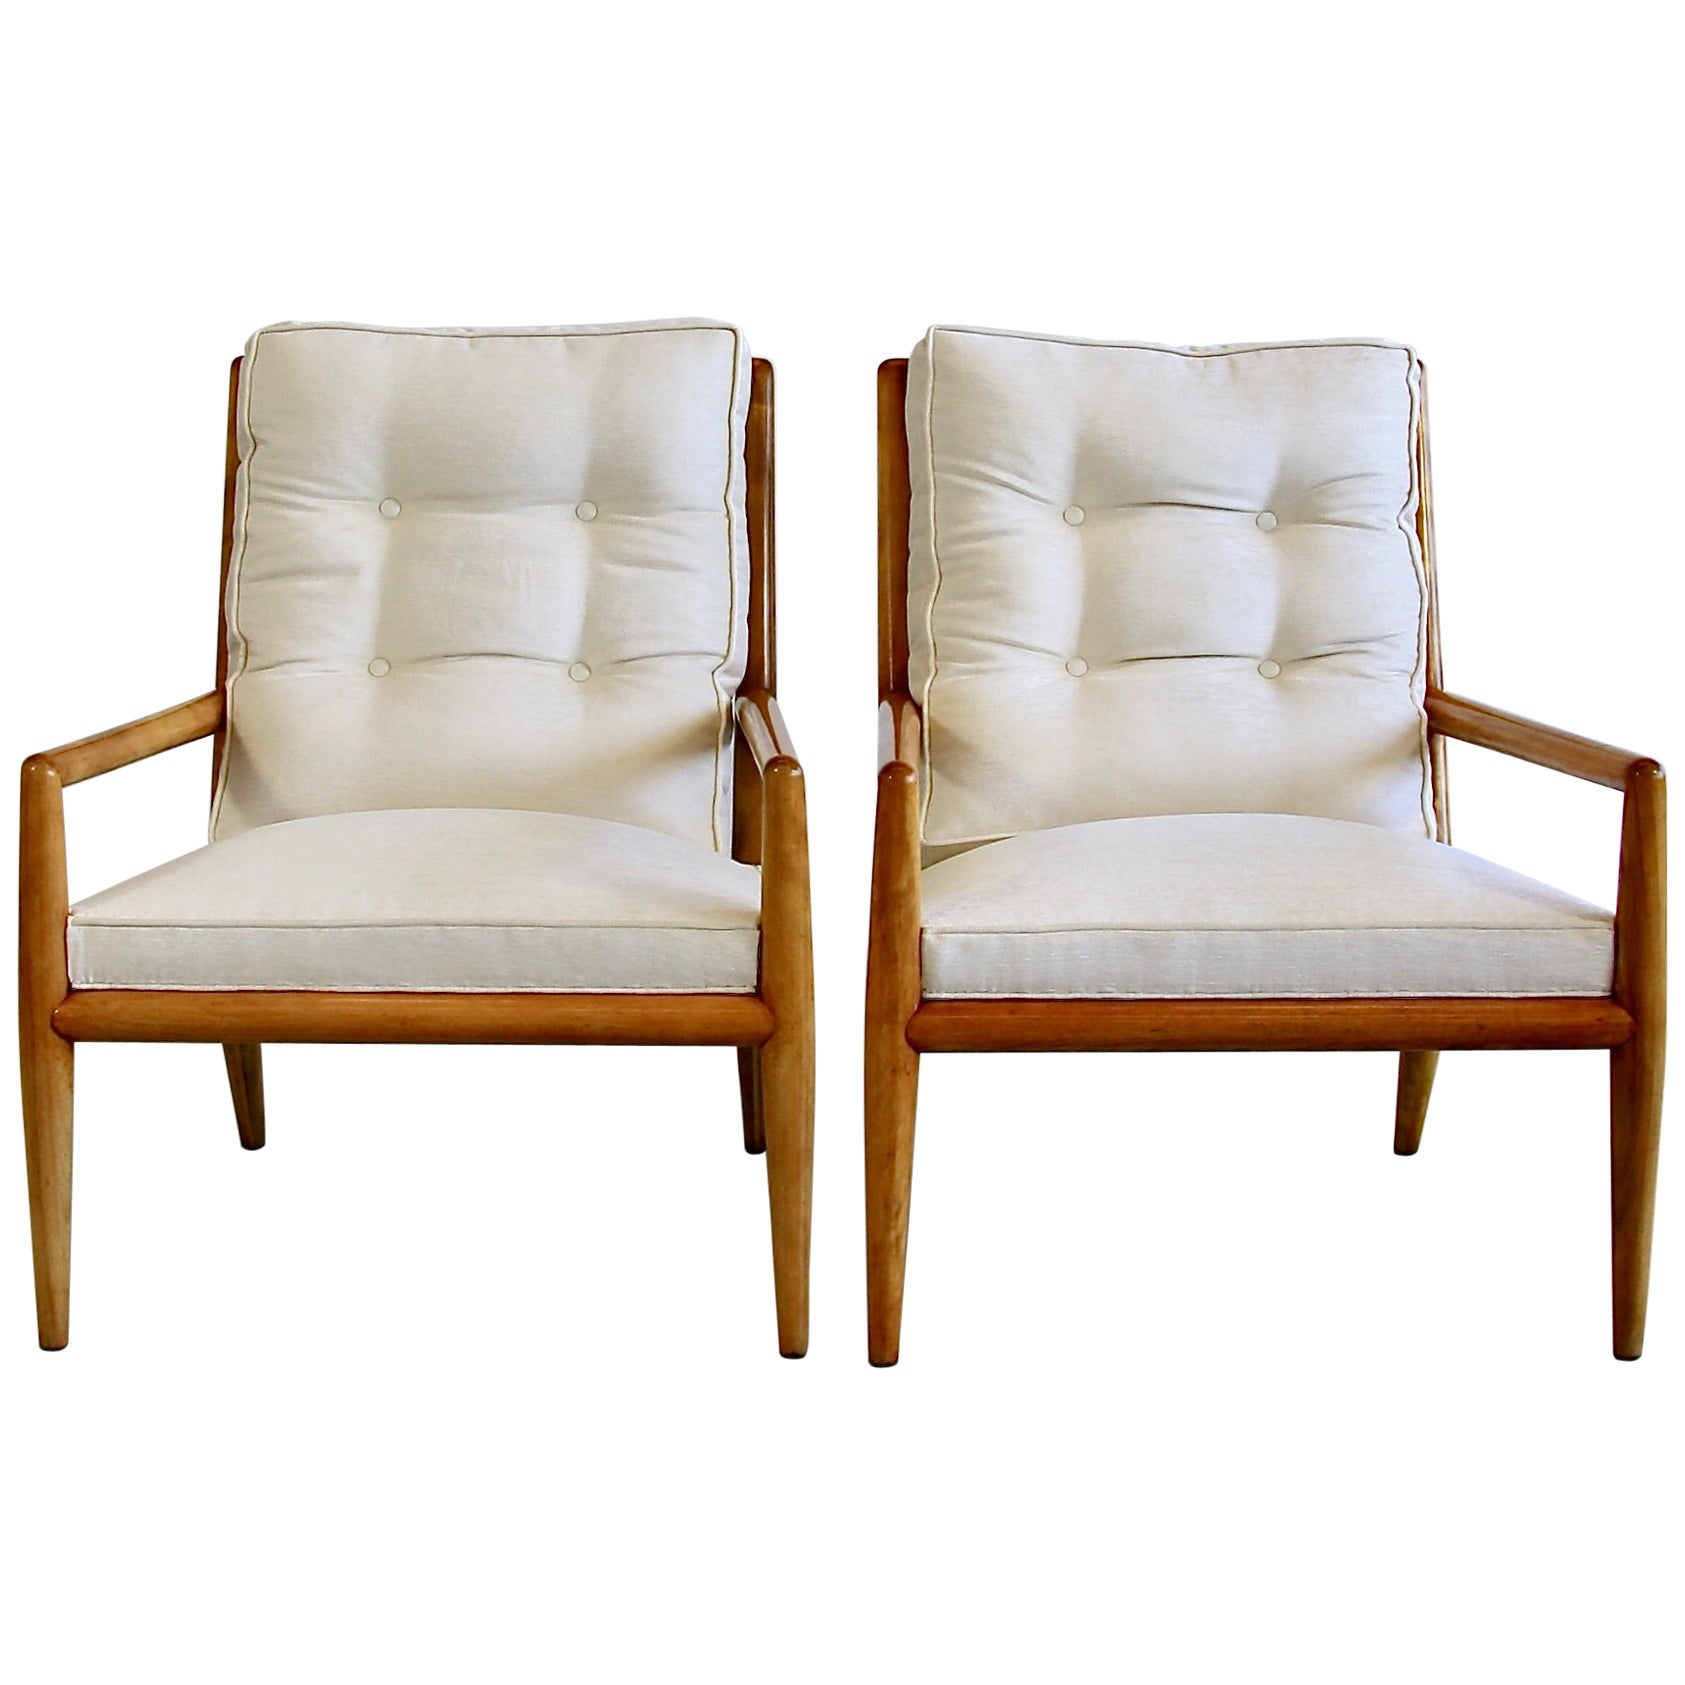 Pair of Armchairs by T.H. Robsjohn-Gibbons, 1950s